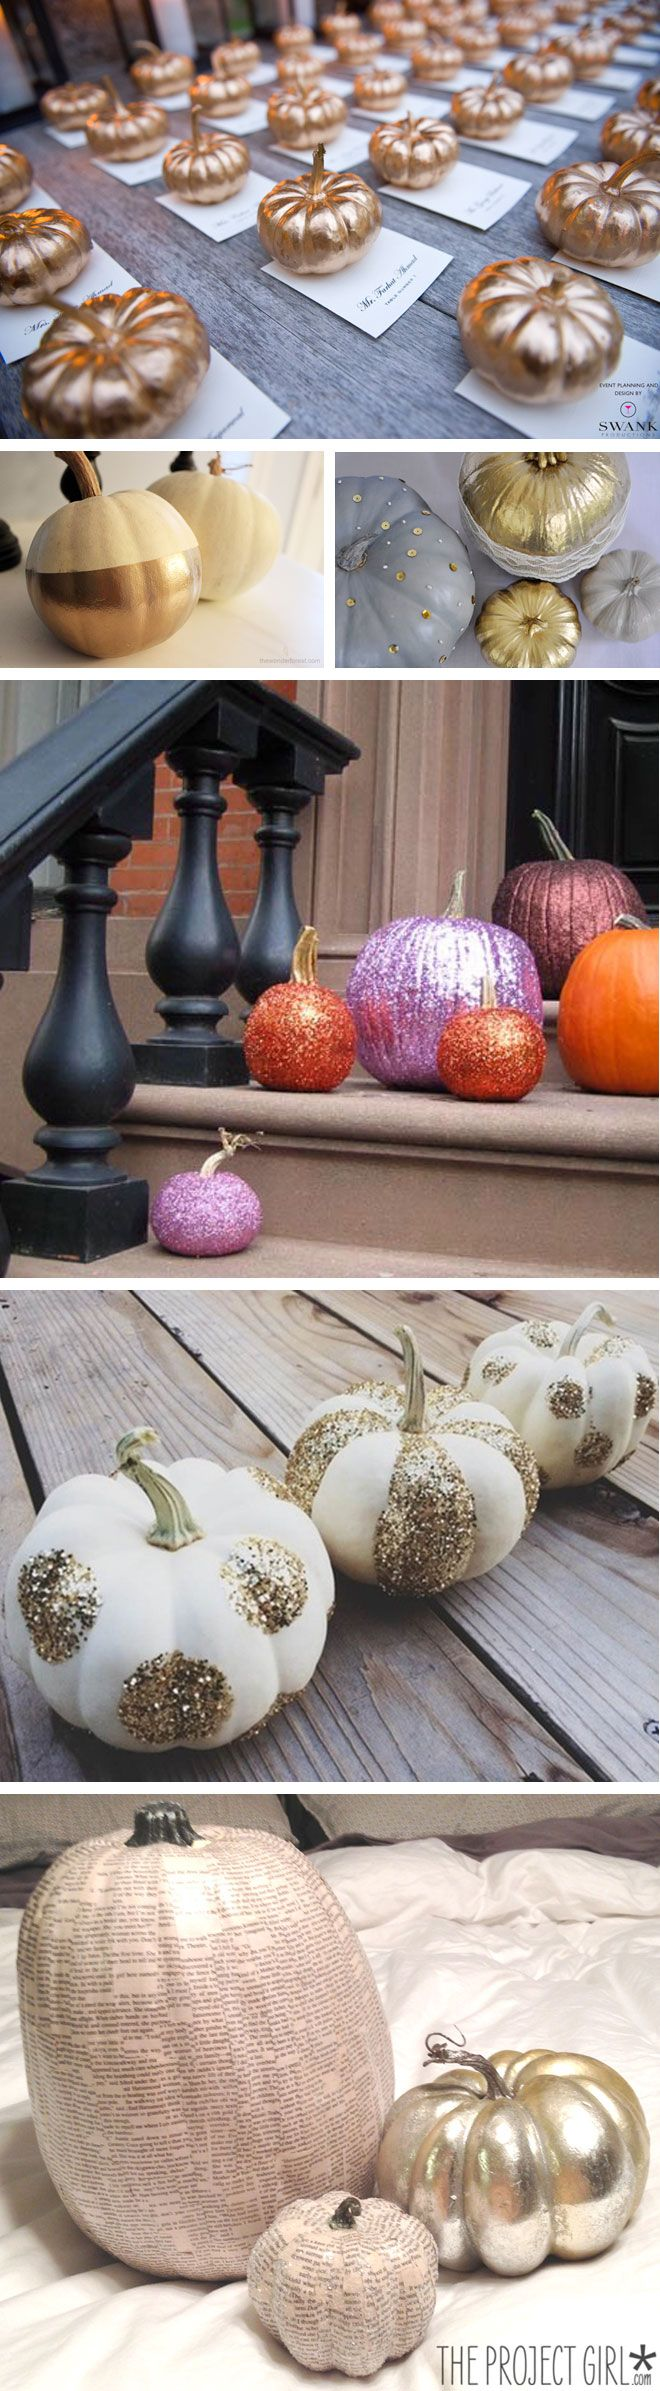 Gold and silver pumpkins look fantastic and have a hint of Cinderella about them - #Halloweenwedding, #autumnwedding decoration and venue ideas. https://twitter.com/CHWV